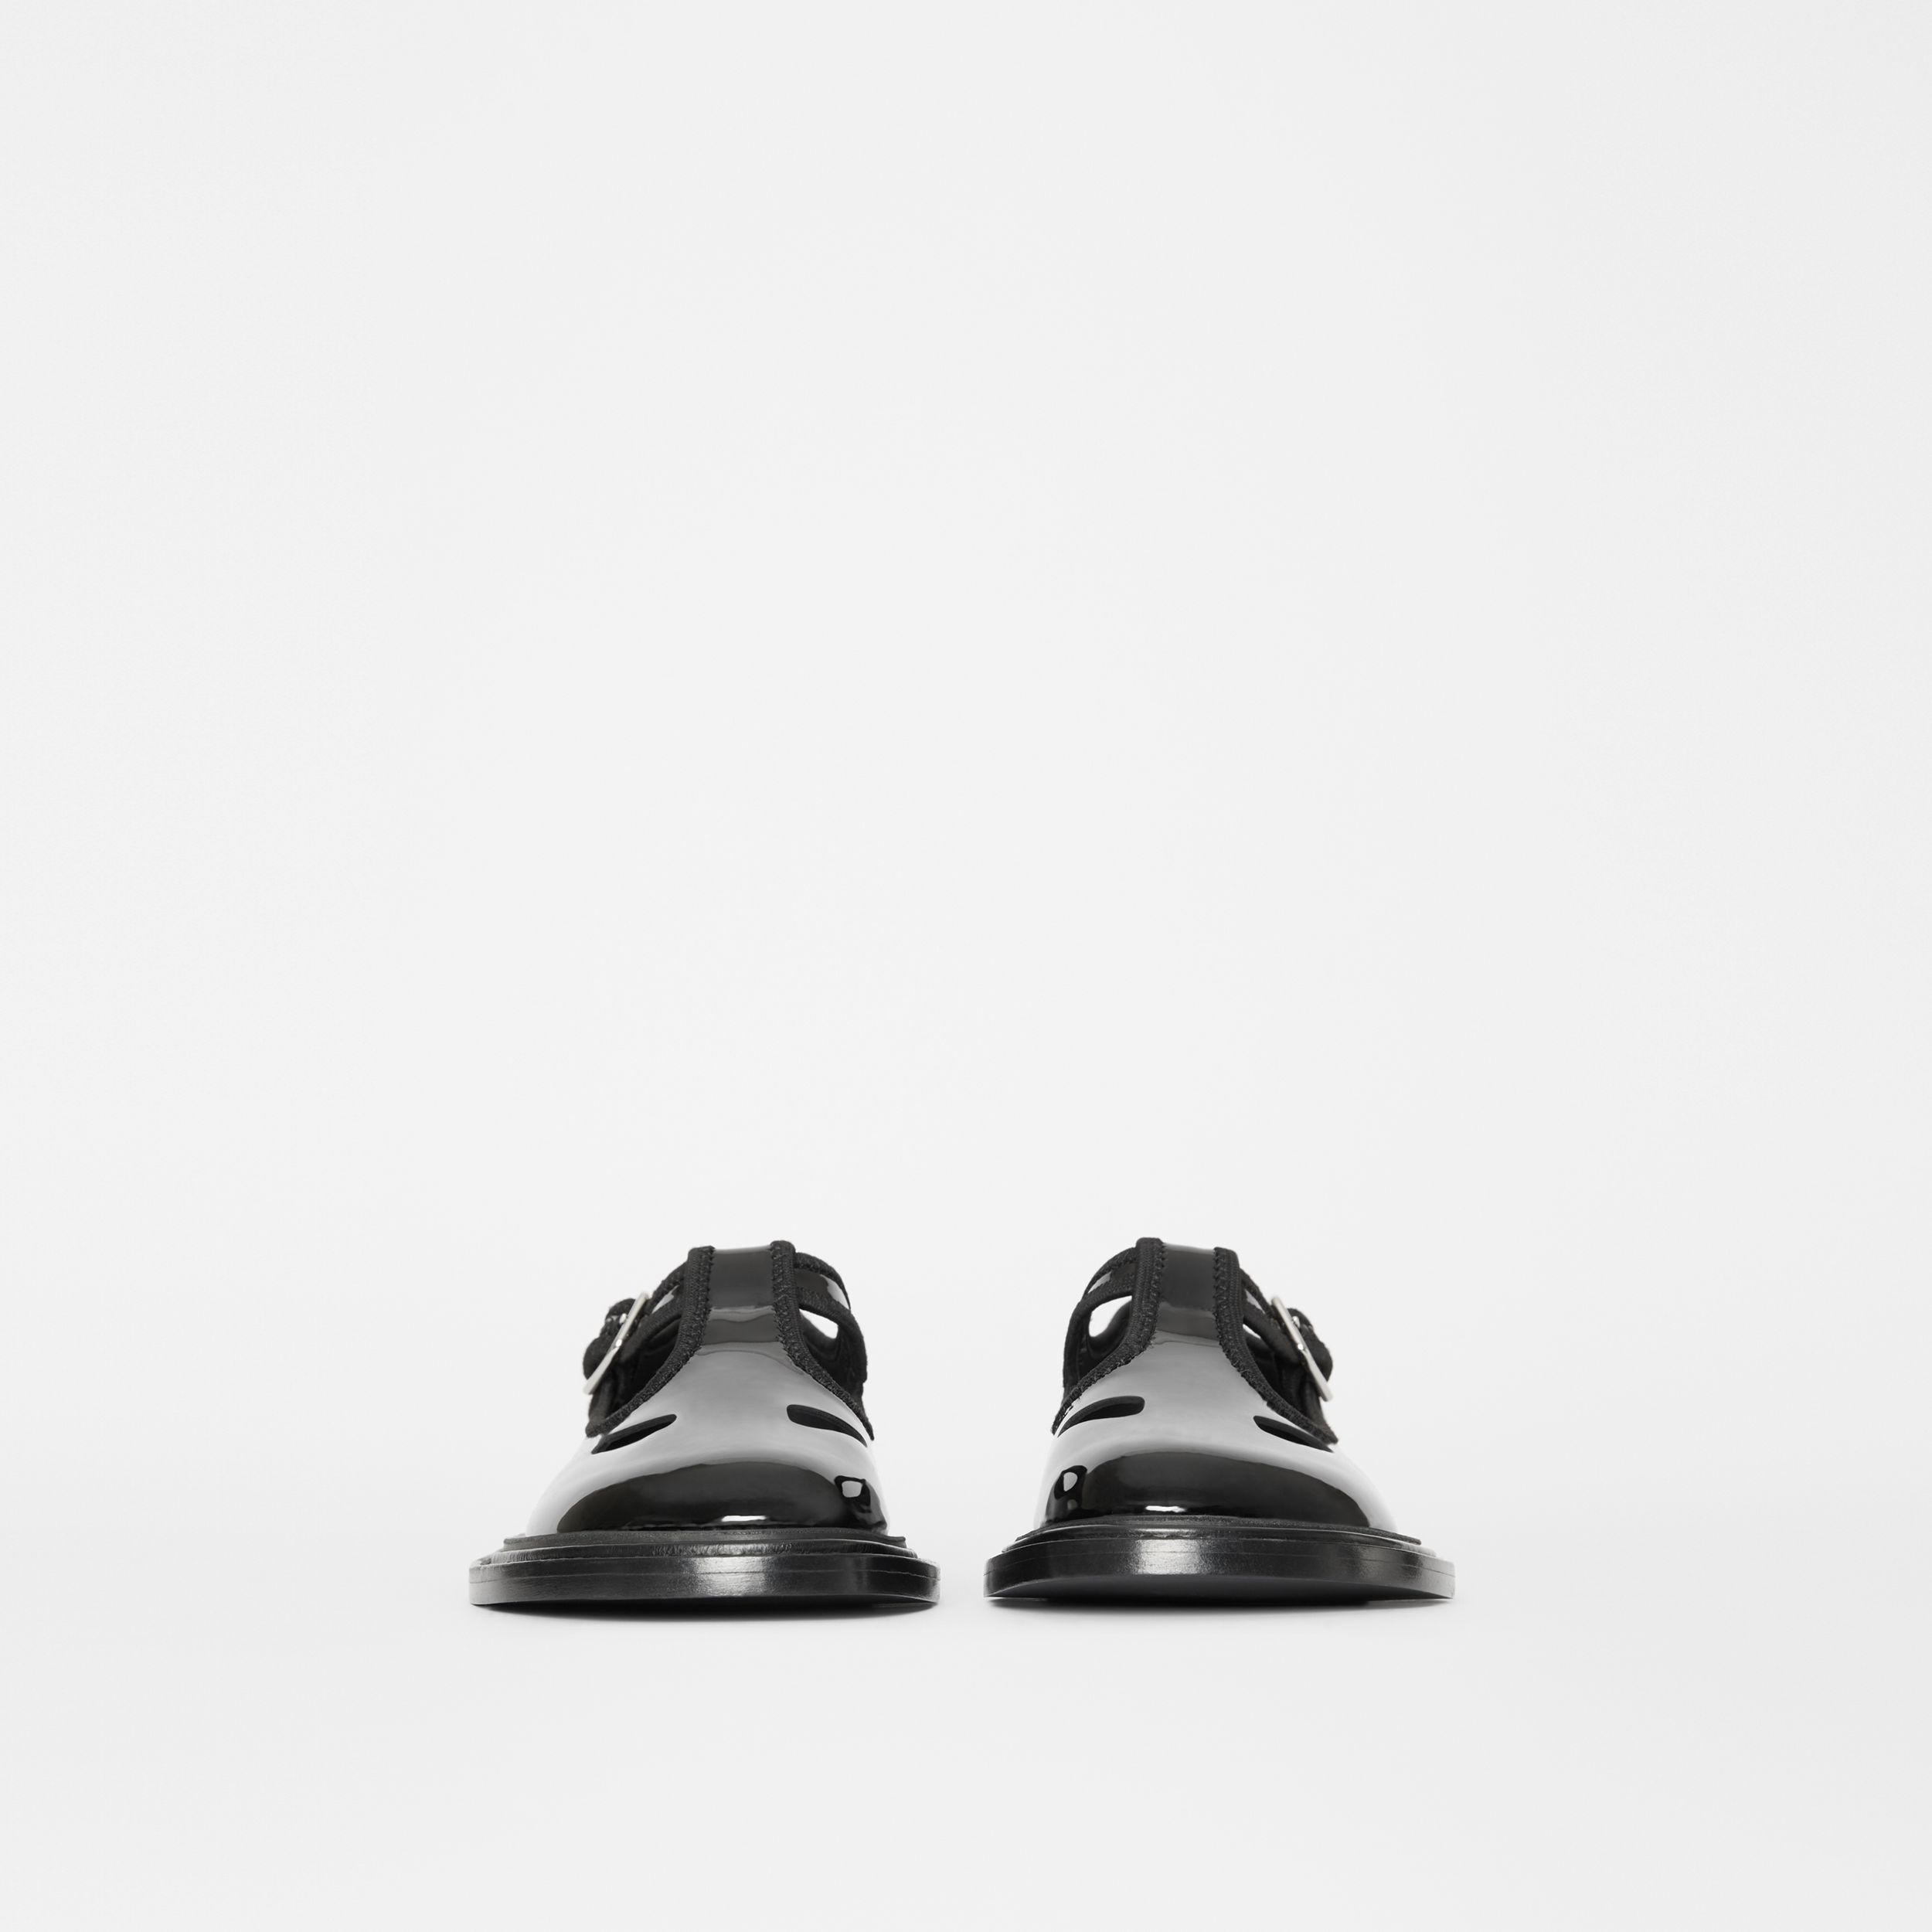 Patent Leather T-bar Shoes in Black - Women | Burberry Singapore - 4